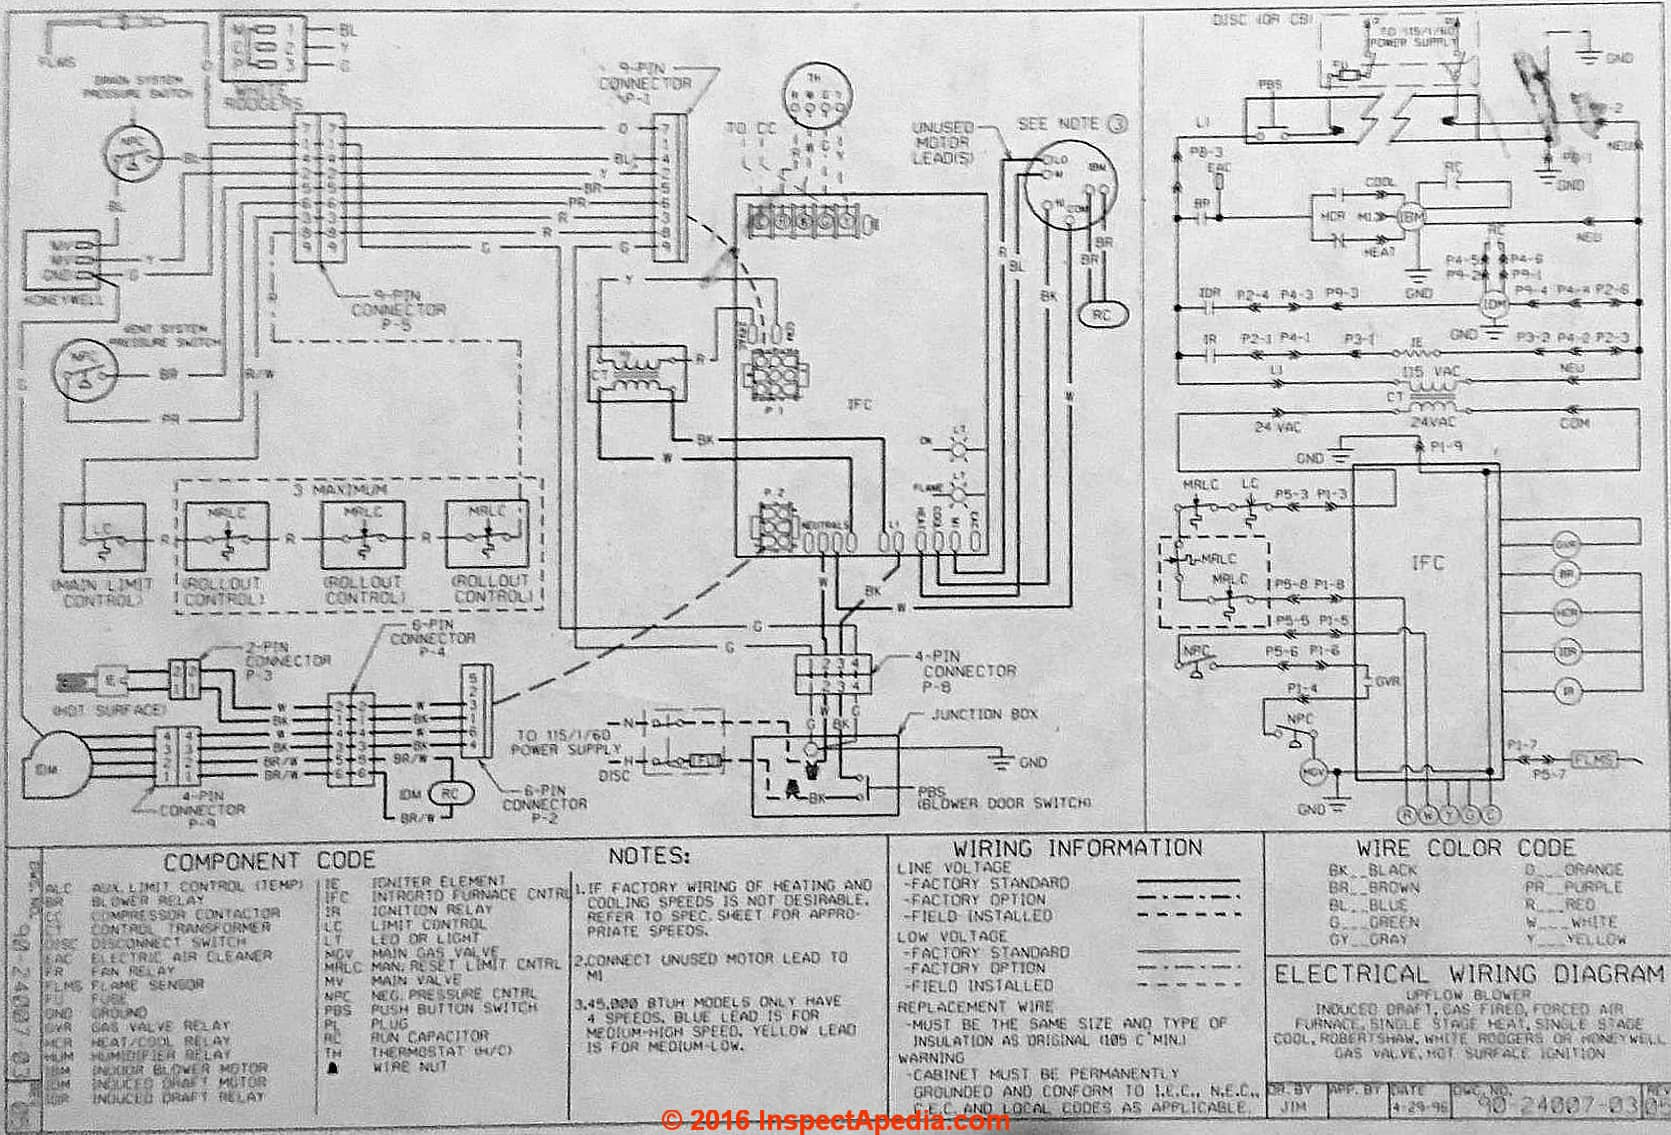 air conditioner heat pump faqs rh inspectapedia com unico wiring diagram for 2430bl1st2 unico system wiring diagram